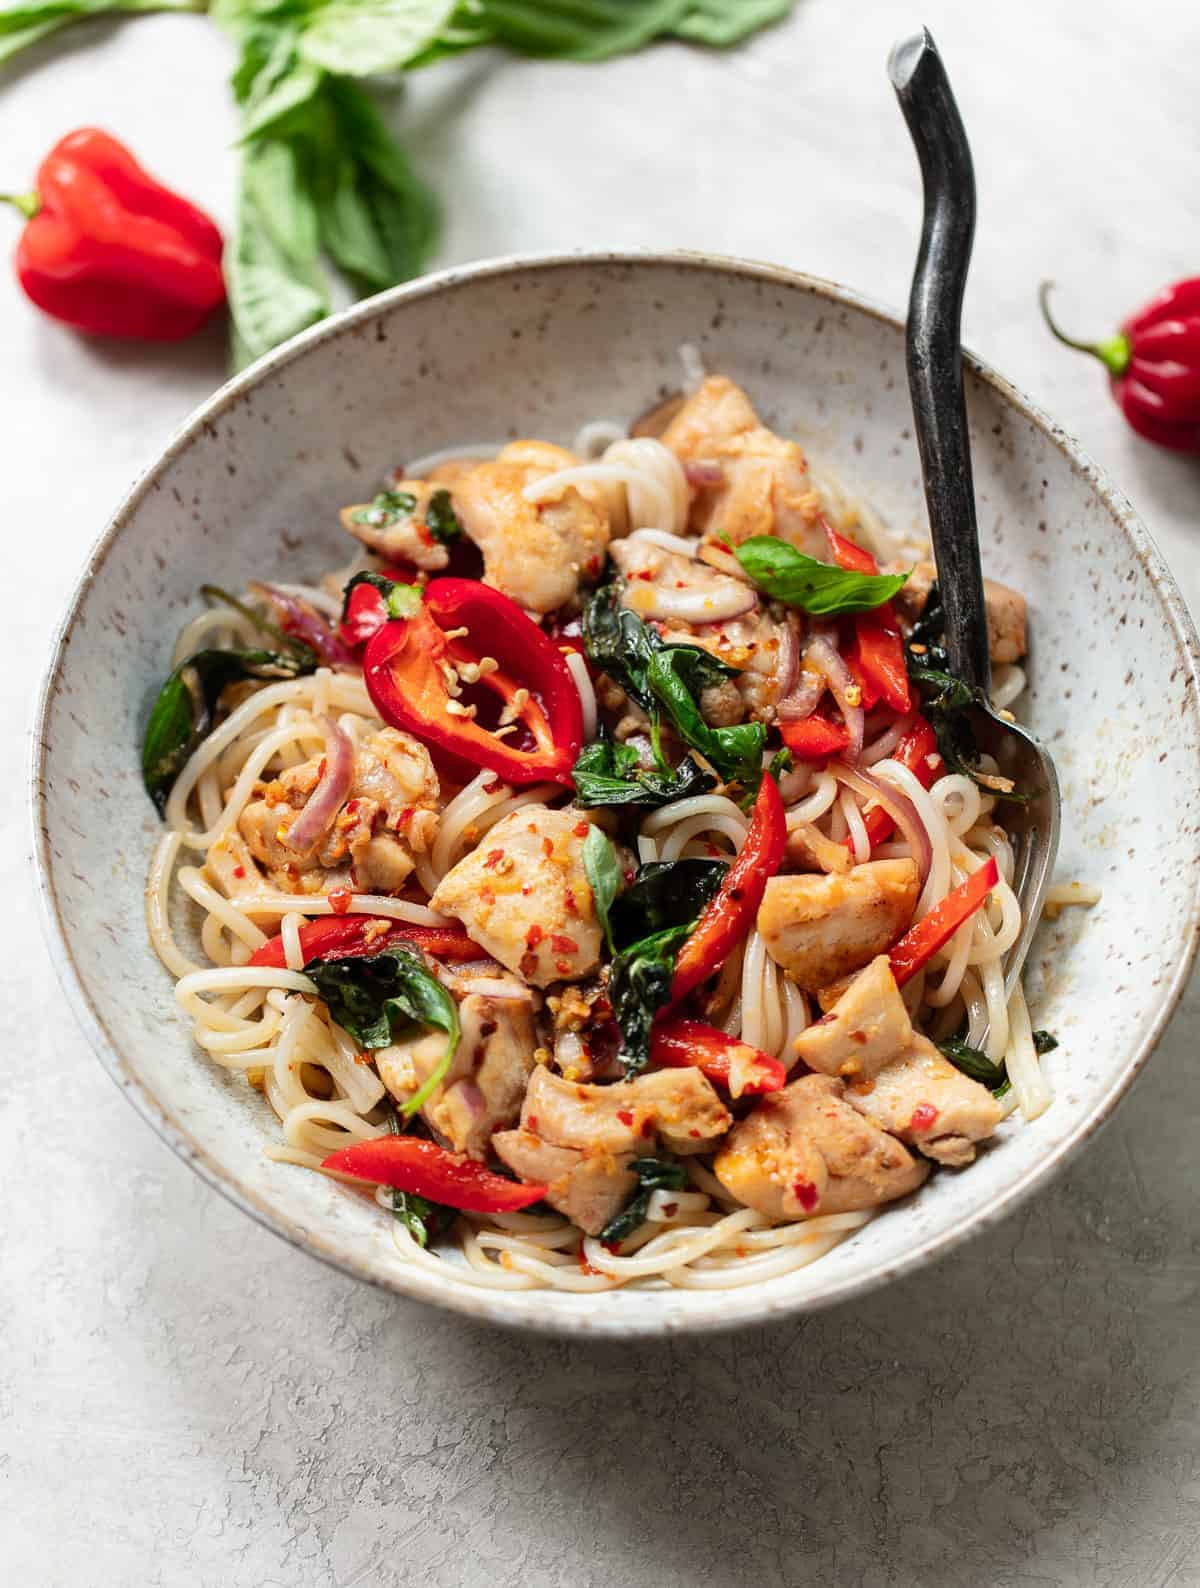 Thai Basil Chicken with Chili Garlic Sauce